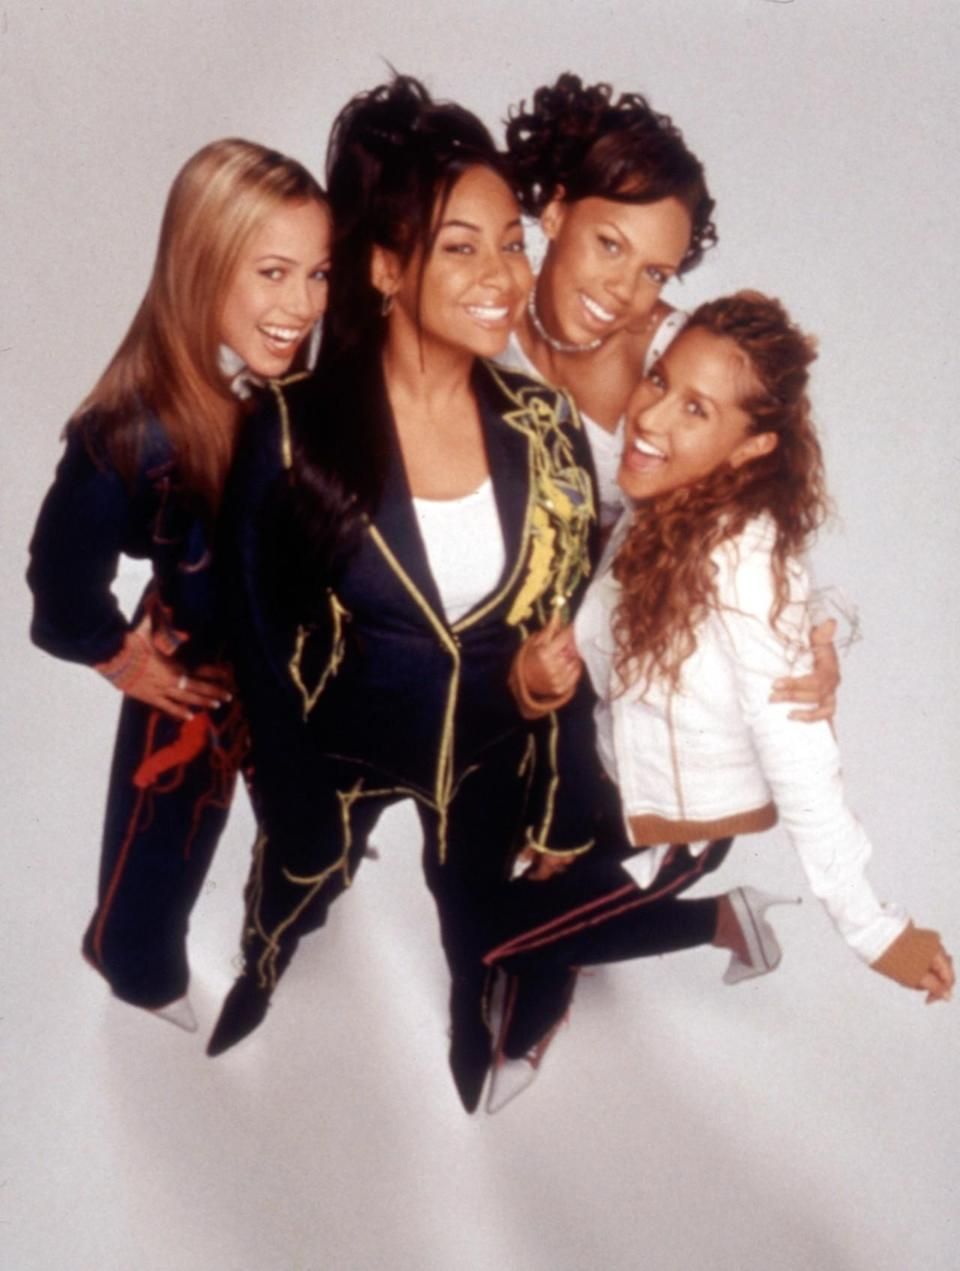 <p>Yes, in the early aughts, even the Disney Channel got into the idea of the girl power group. The musical group Cheetah Girls, which consisted of Adrienne Bailon, Kiely Williams, Sabrina Bryan, and Raven-Symoné had three nationwide tours, sold 3.6 million records, and released three Disney Channel Original Movies. While the actual band was made up of two former members of 3LW and two Disney veterans, the film was about a group of high school BFFs who made it big as pop stars together. Getting famous with your best friends — only on Disney. <i>(Source: Everett Collection)</i></p>